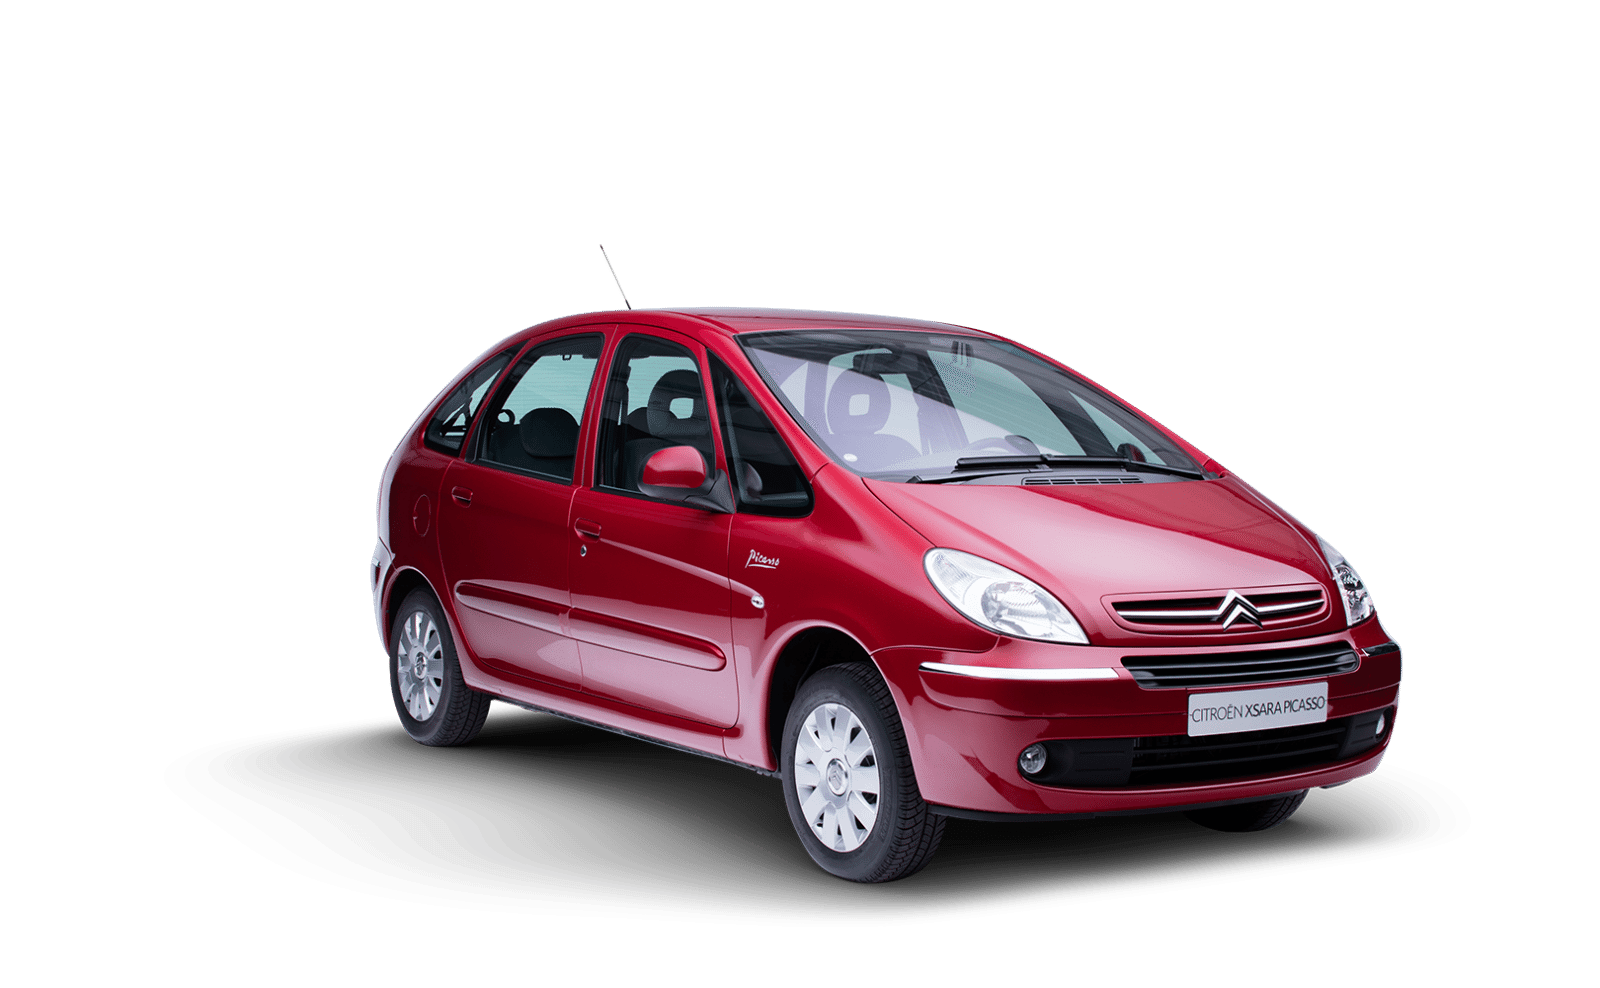 Citro n xsara picasso photos details and equipment for Porte xsara picasso